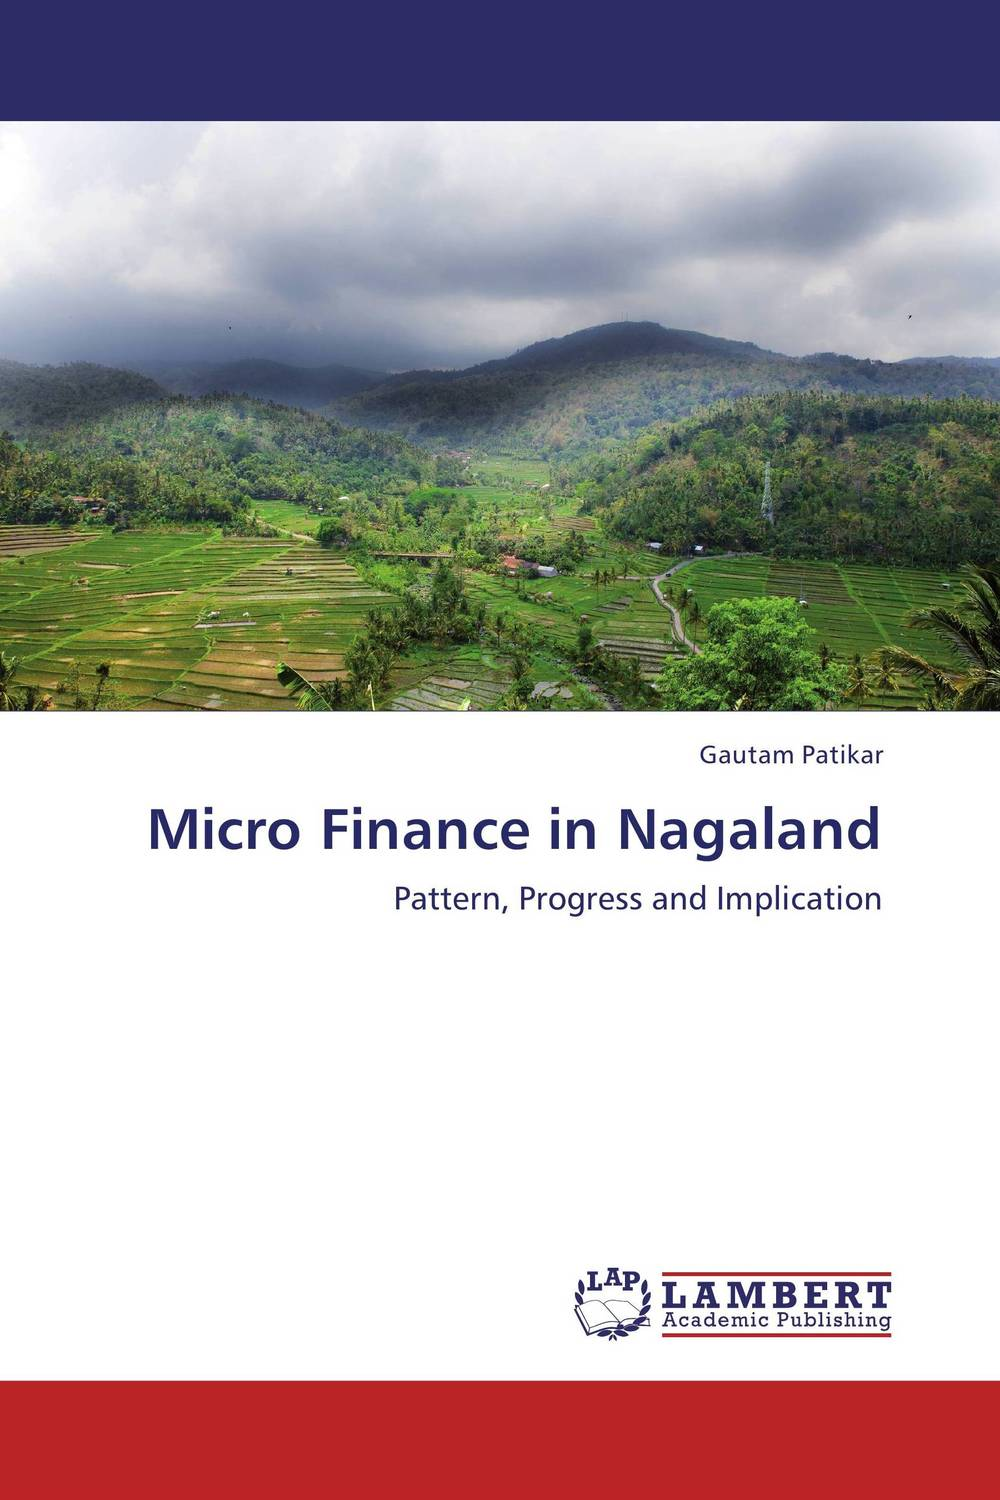 Micro Finance in Nagaland an analysis of challenges in scaling up micro finance in india